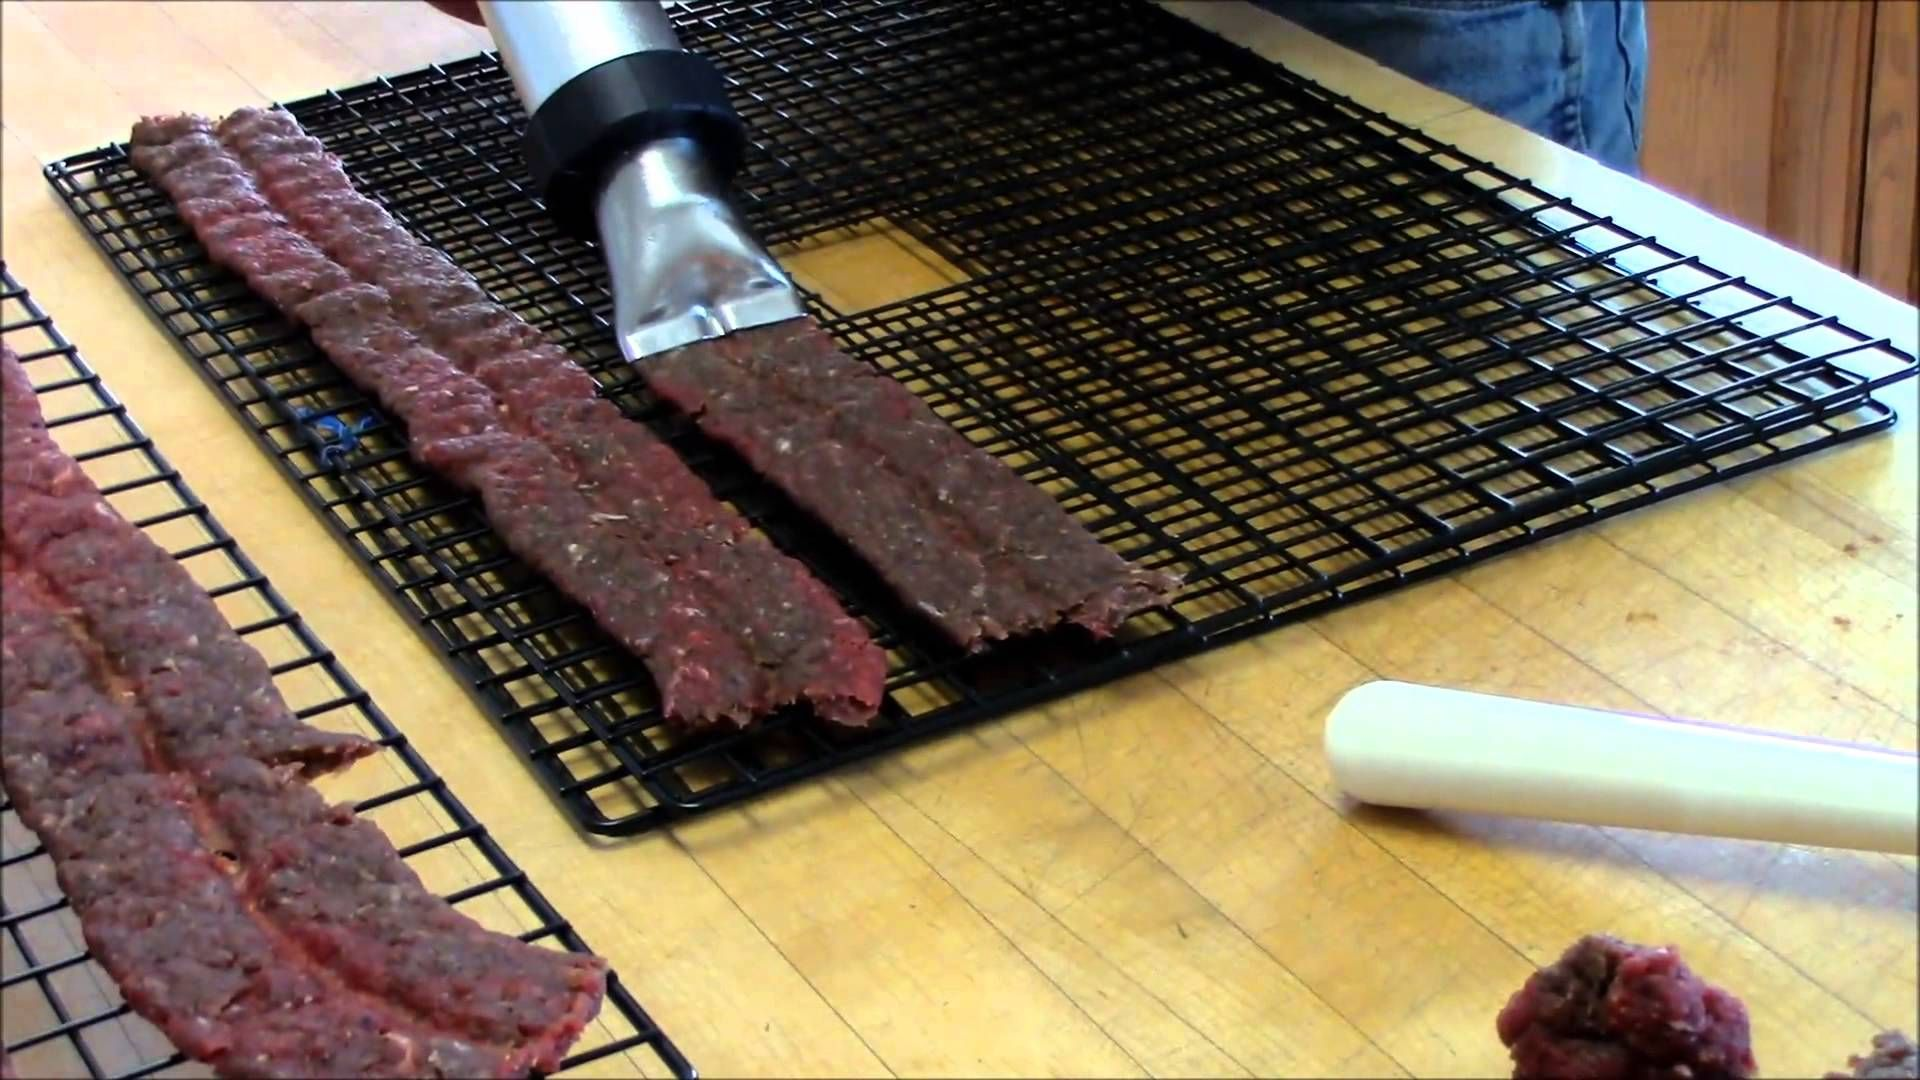 Homemade Ground Venison Jerky Making Deer Jerky With Our Jerky Blaster For Information On Canning Venison Or Elk Visit H Venison Jerky Ground Venison Venison